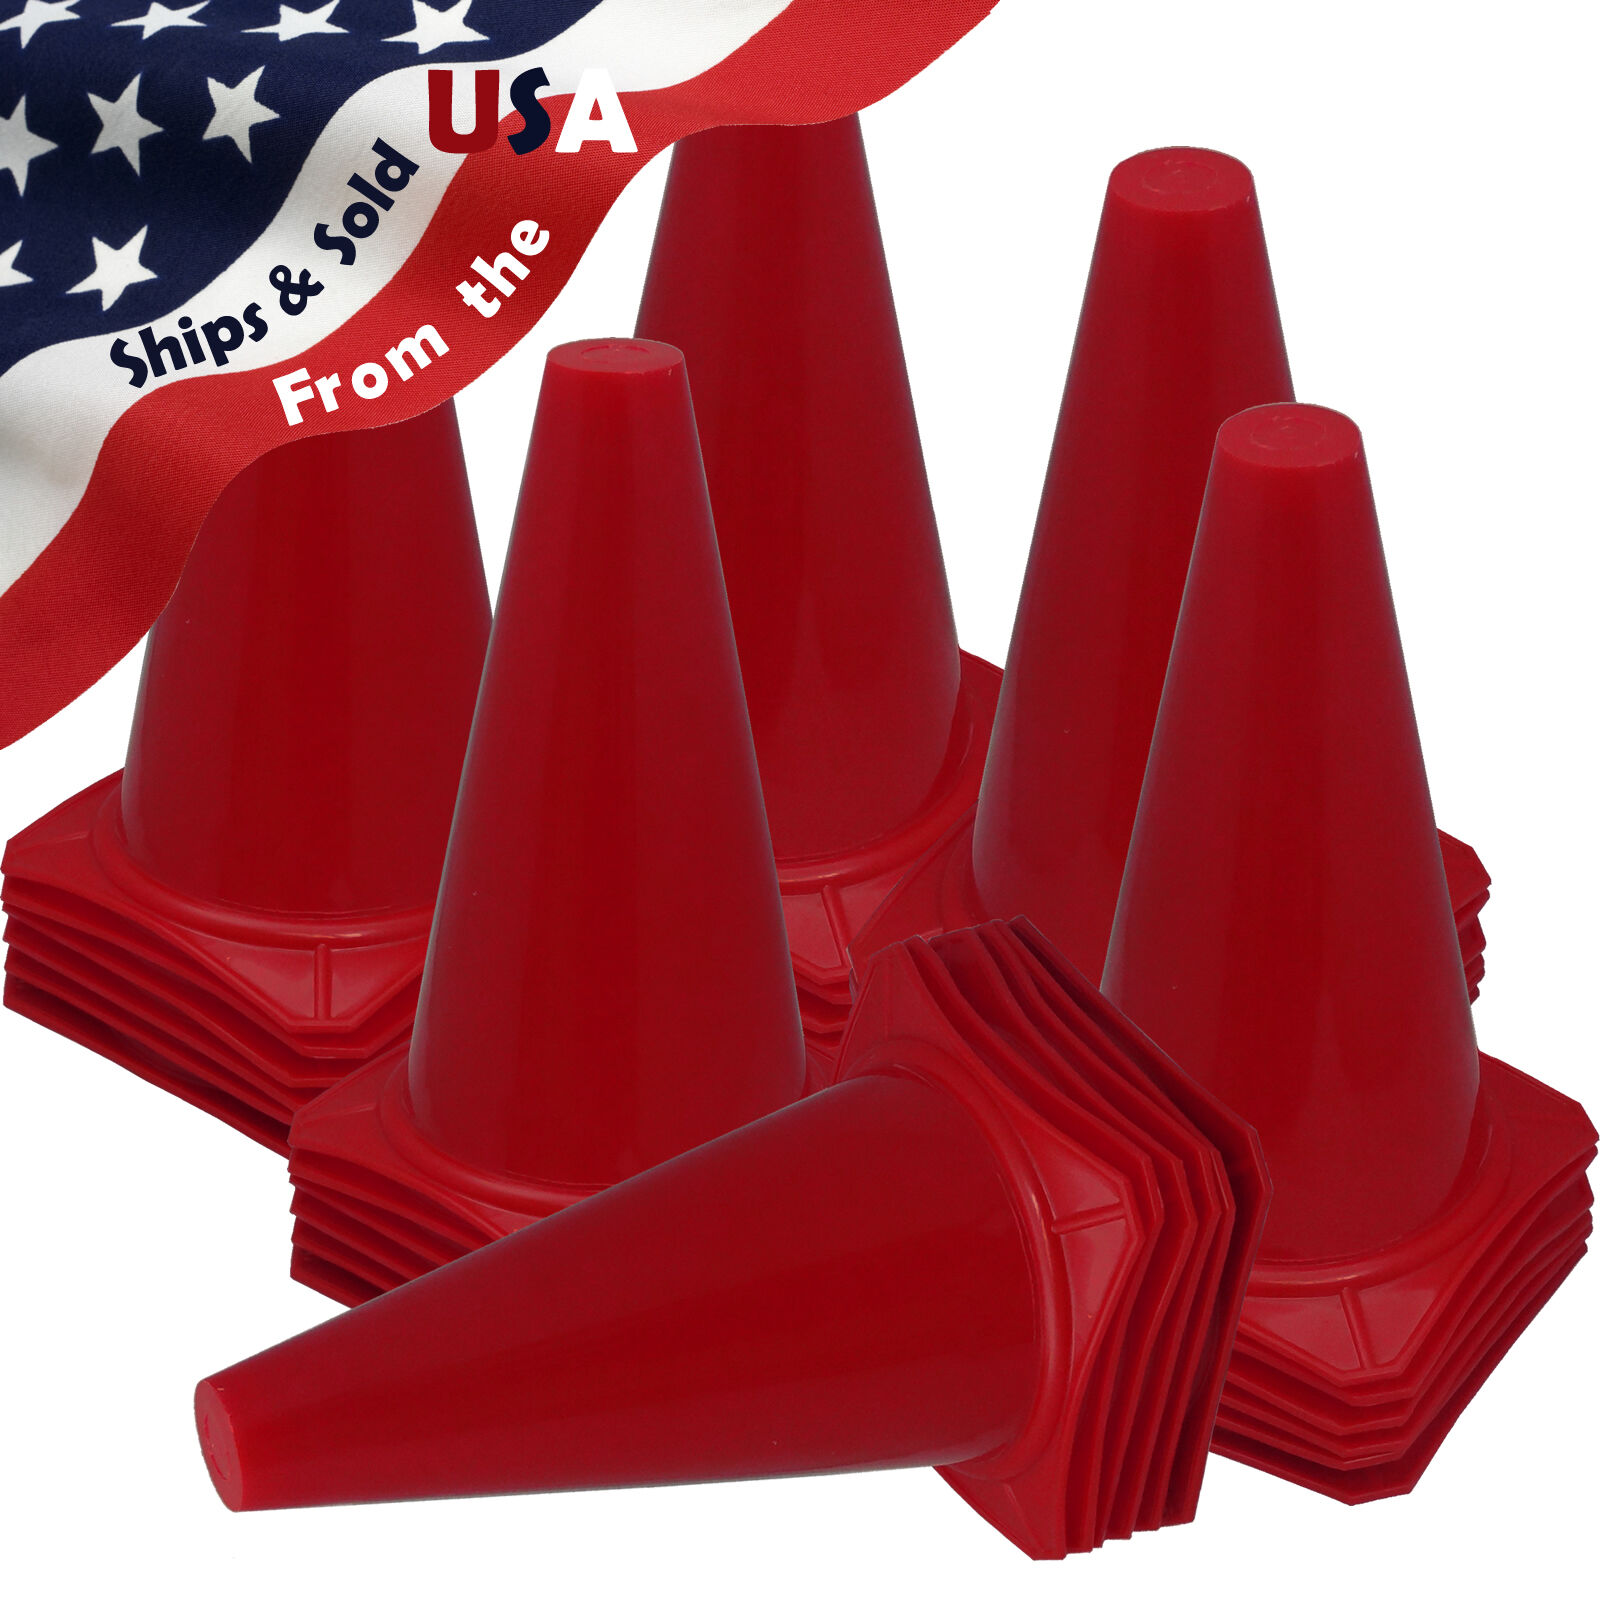 BRAND NEW  US SELLER  RED CONES 9  Tall Traffic Safety Training  Qty 36